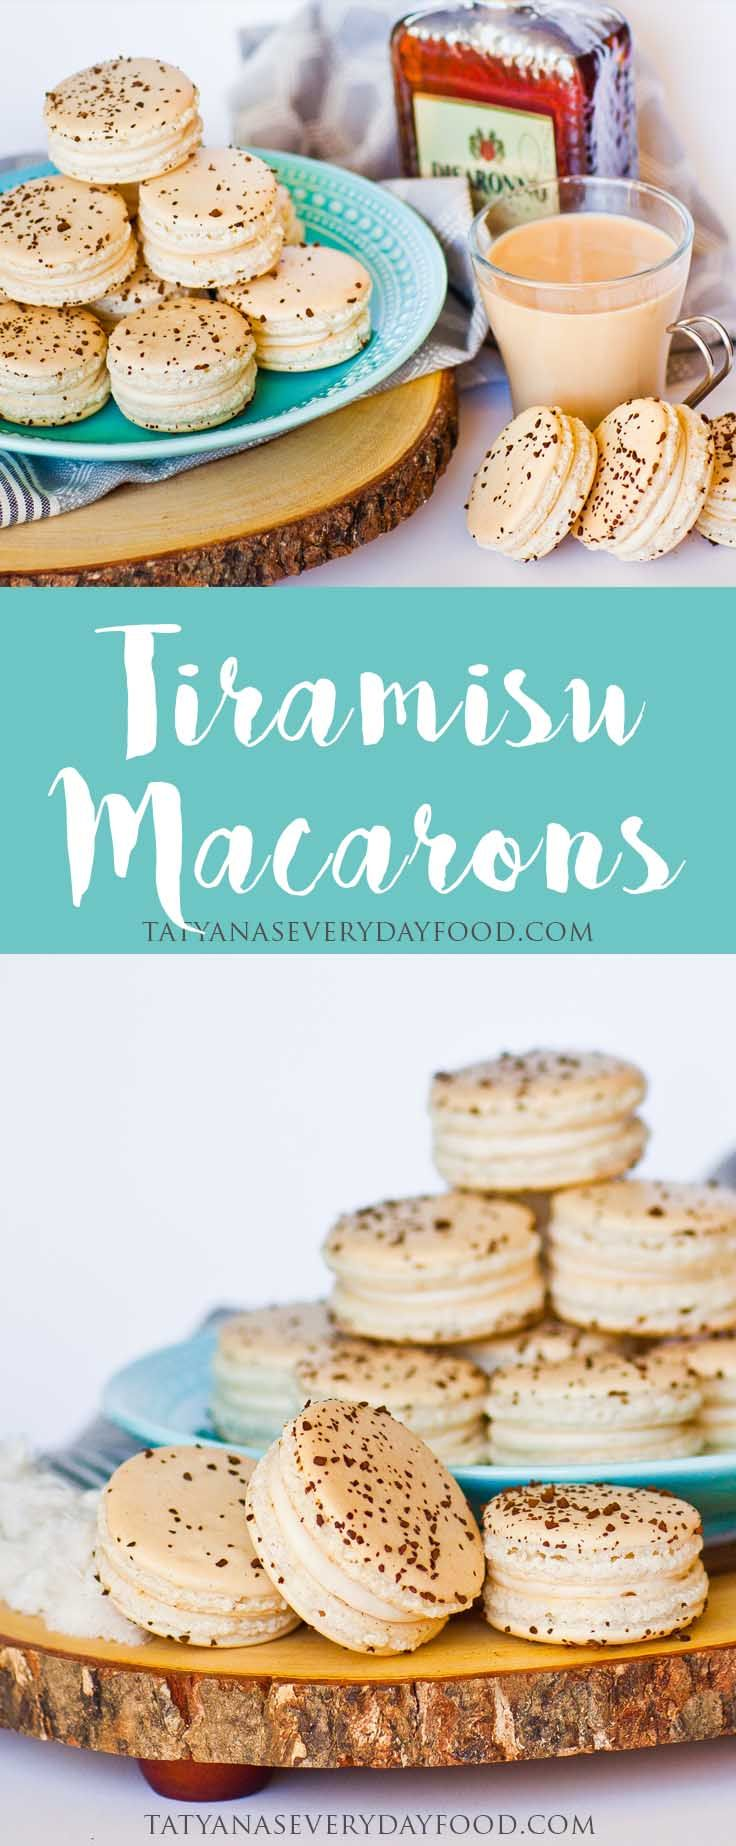 """I'm a huge fan of the classic Italian dessert """"Tiramisu""""! I love the combination of flavors and the way it melts in my mouth! For this macaron recipe, I wanted to capture all of those flavors in a cookie! These Tiramisu macarons taste just like a bite of the classic dessert! I start with a […]"""